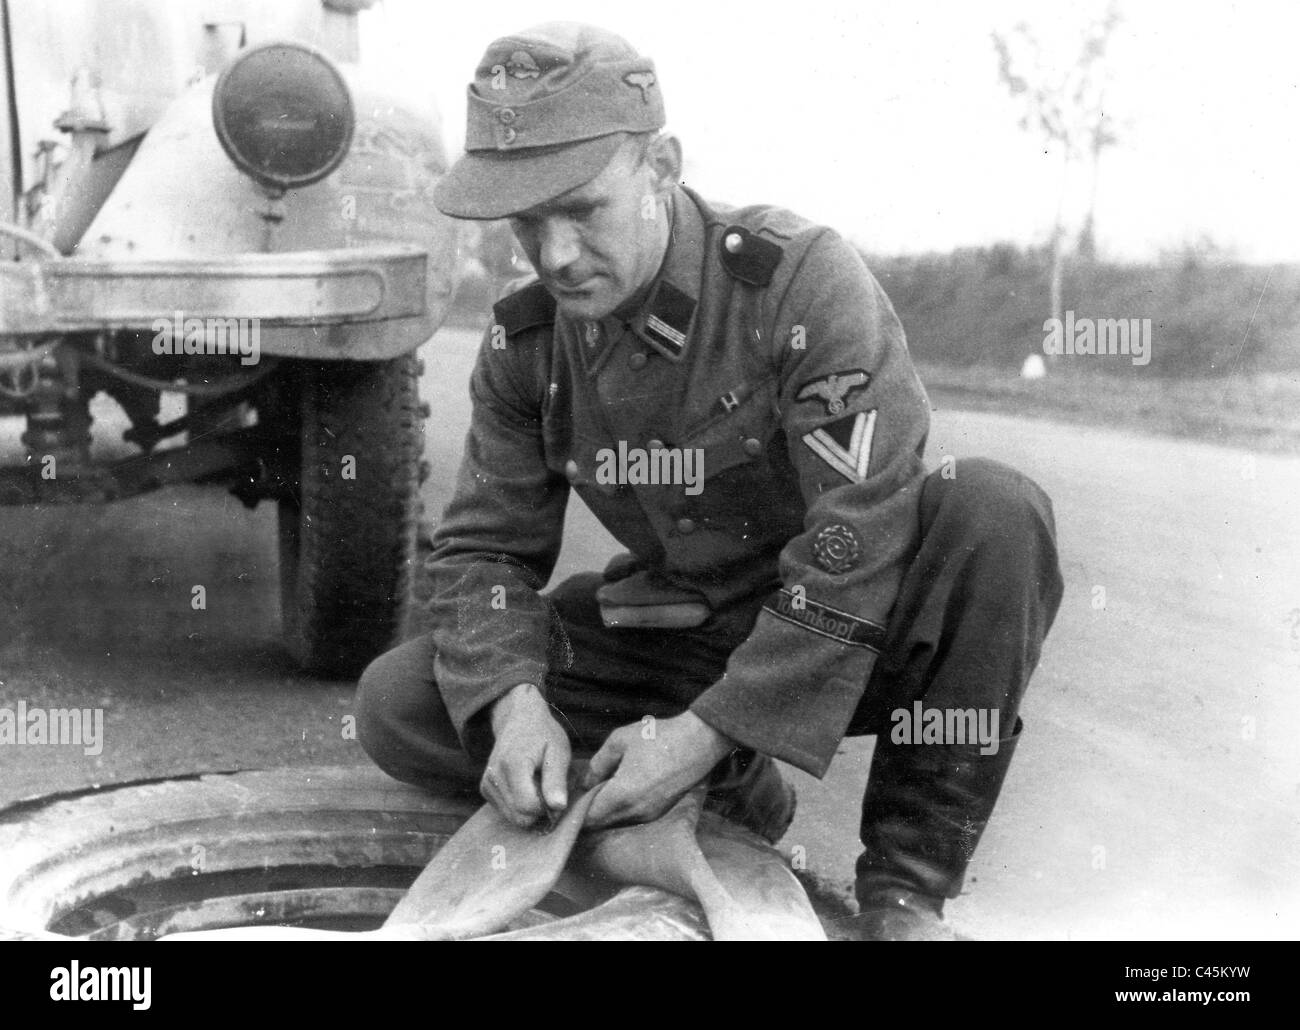 Soldier of the ss division totenkopf stock image